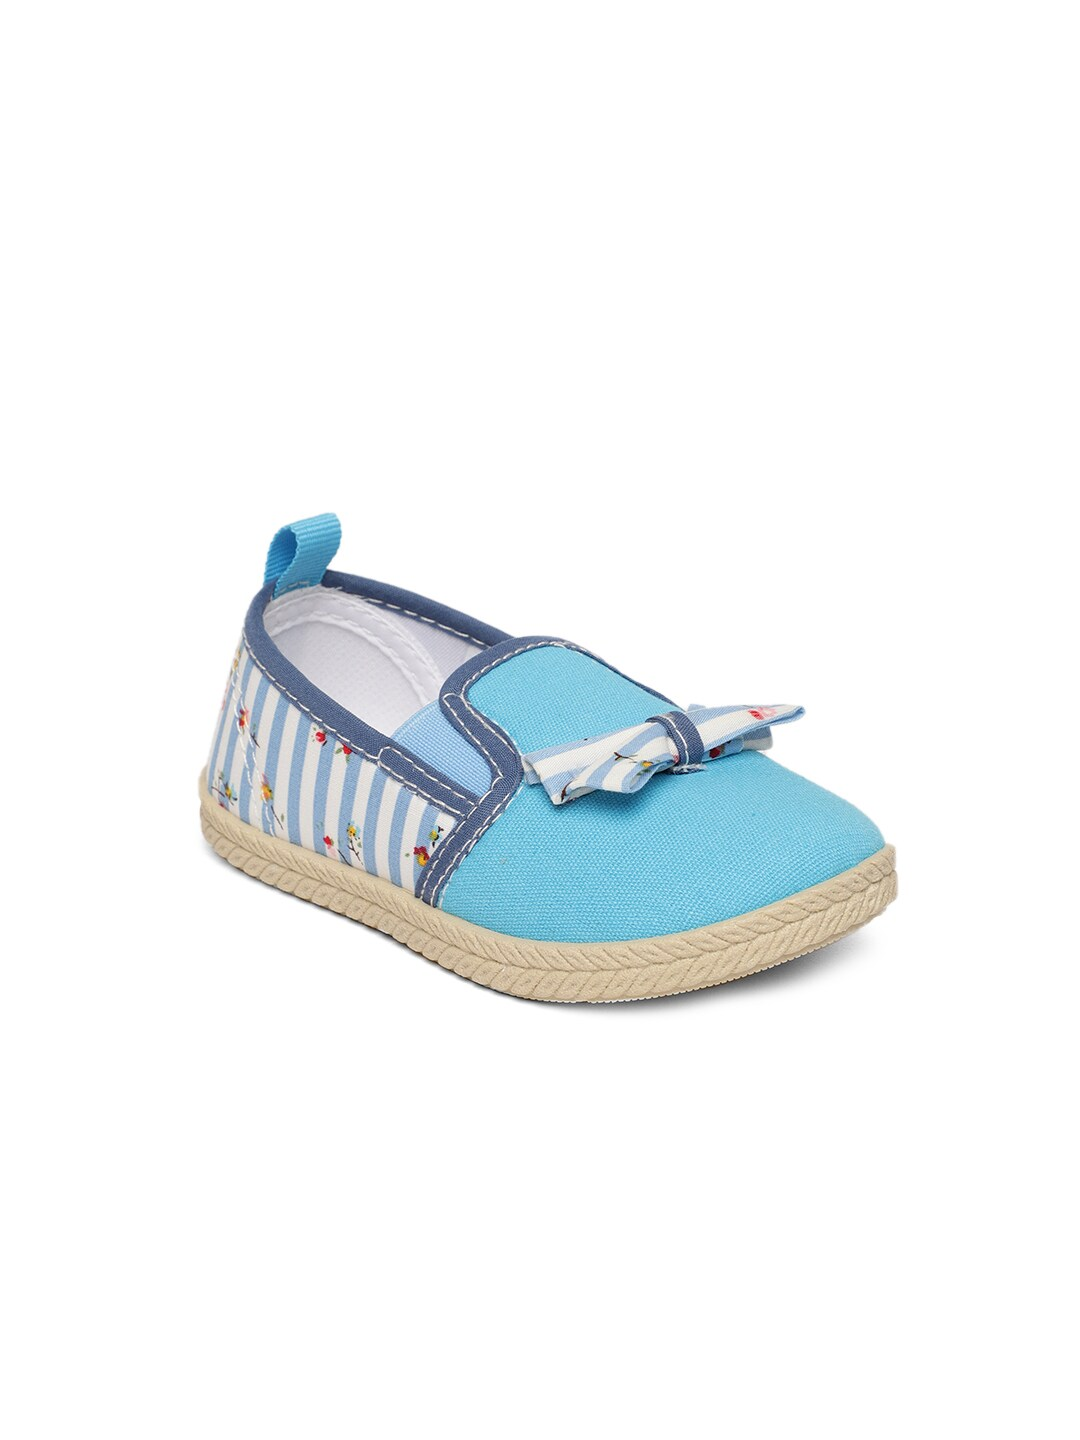 b8e6138431e Girls Shoes - Online Shopping of Shoes for Girls in India